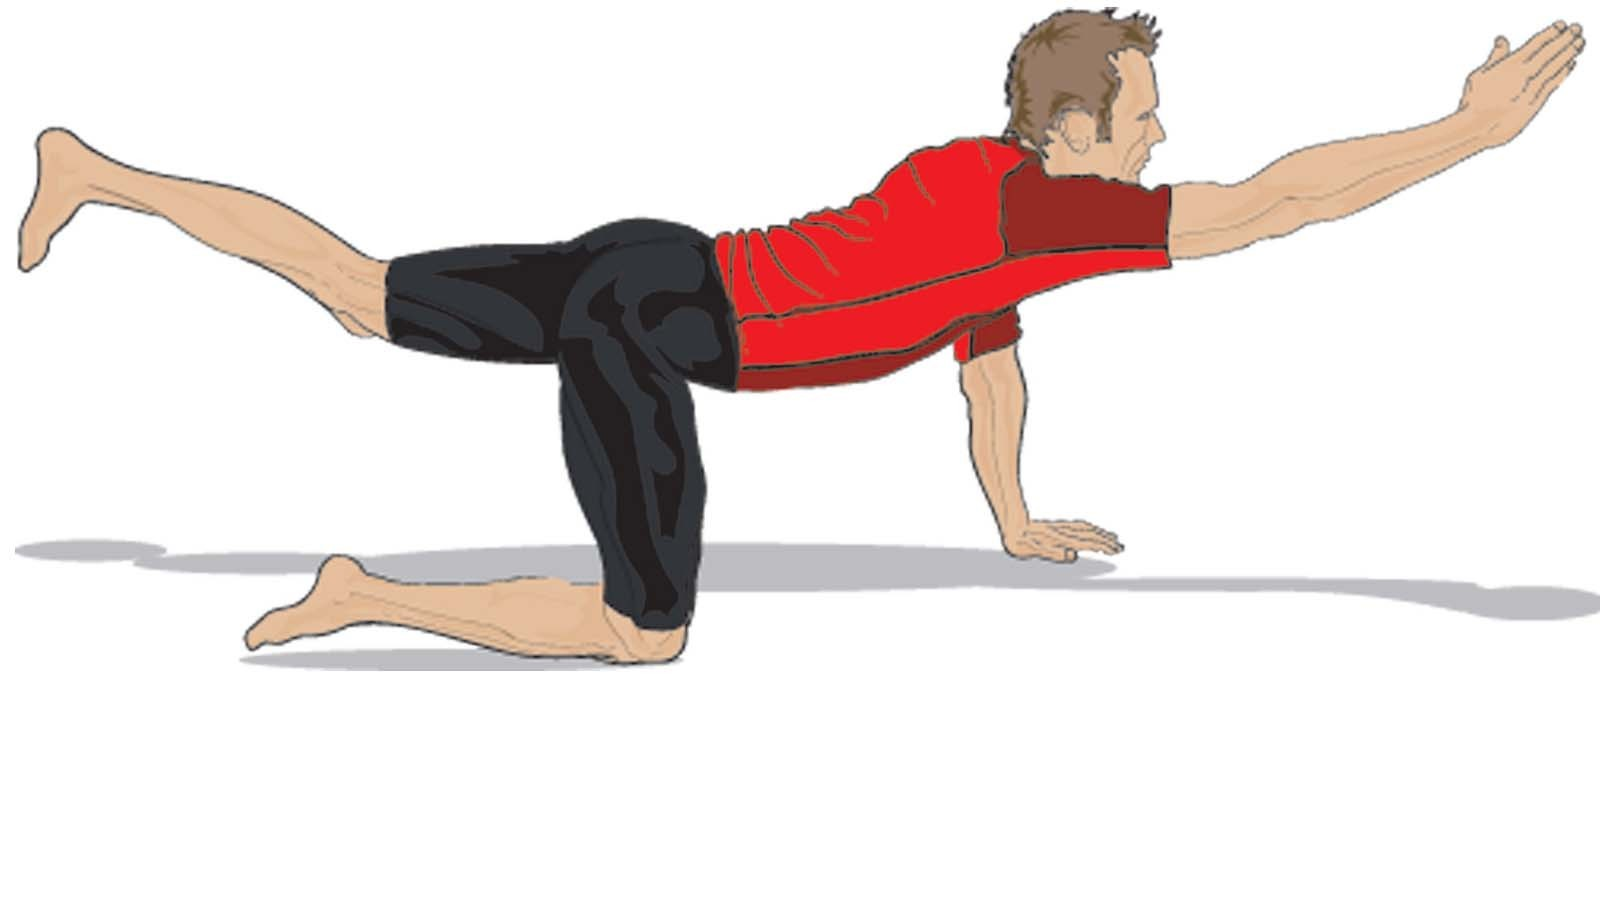 To perform the superman, get on all fours, then lift your right arm and left leg, then swap to lift your left arm and right leg